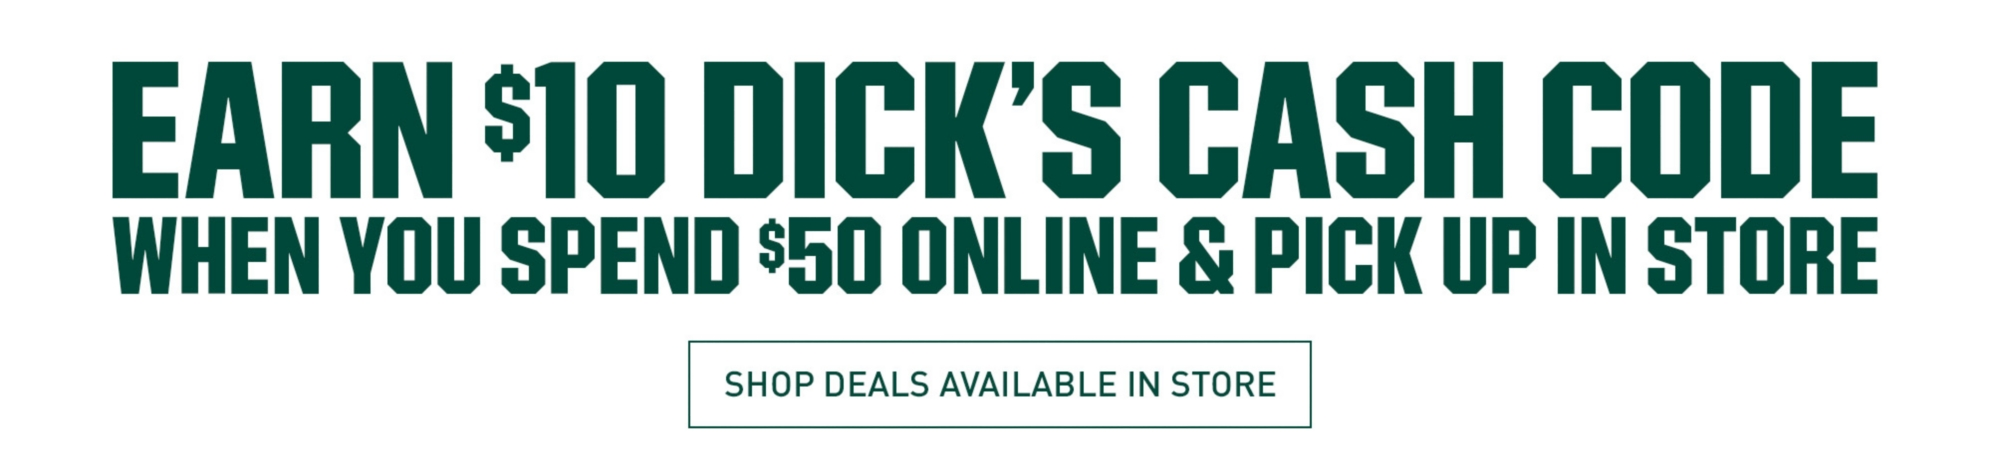 Buy Online Pickup In Store for 10 Off 50